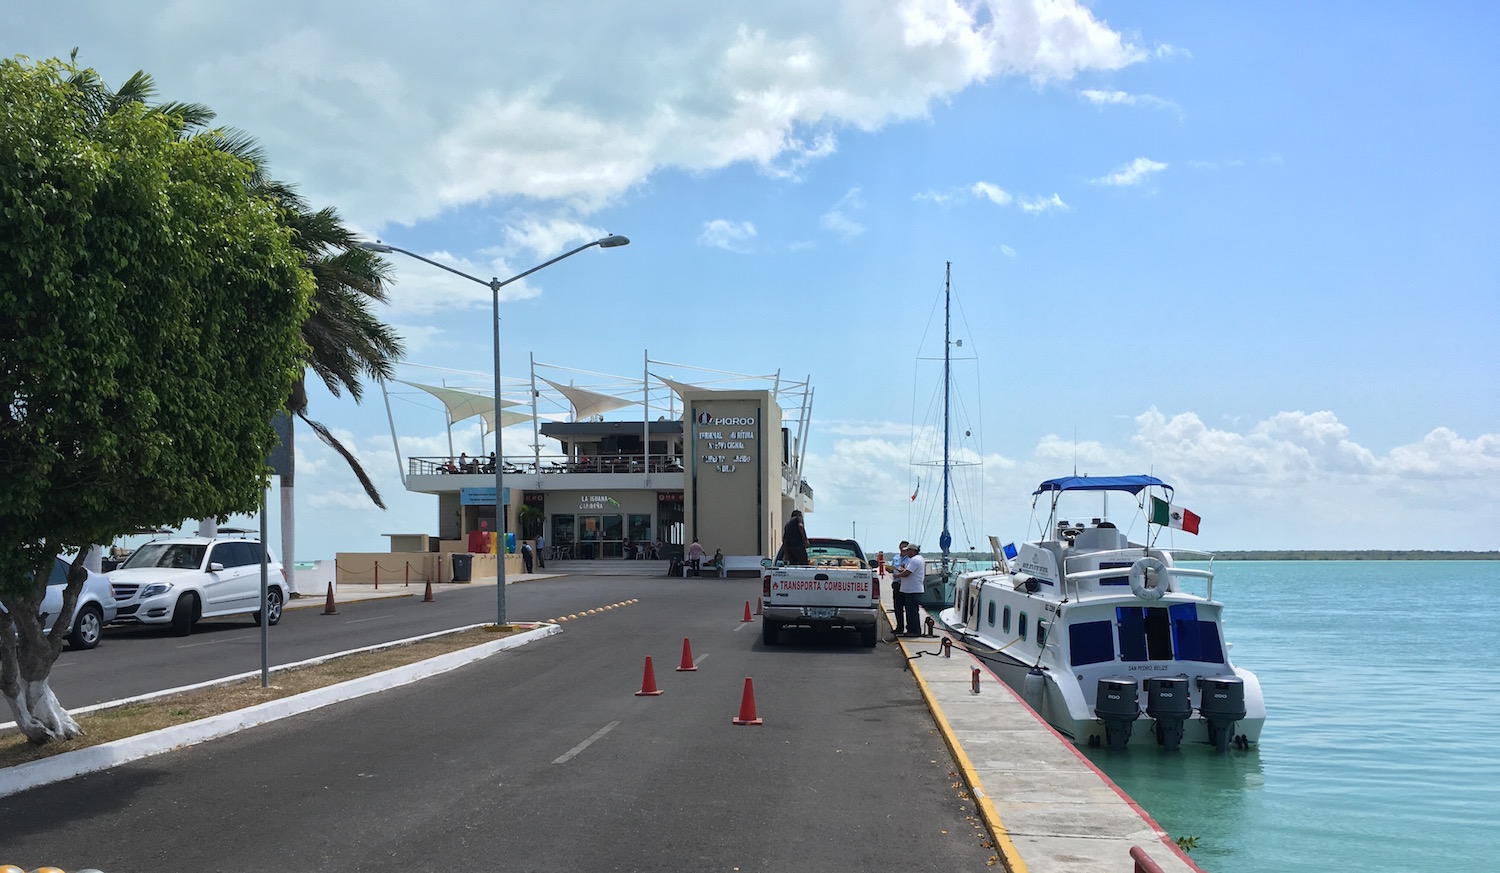 The Chetumal ferry terminal is modern, like the rest of the city